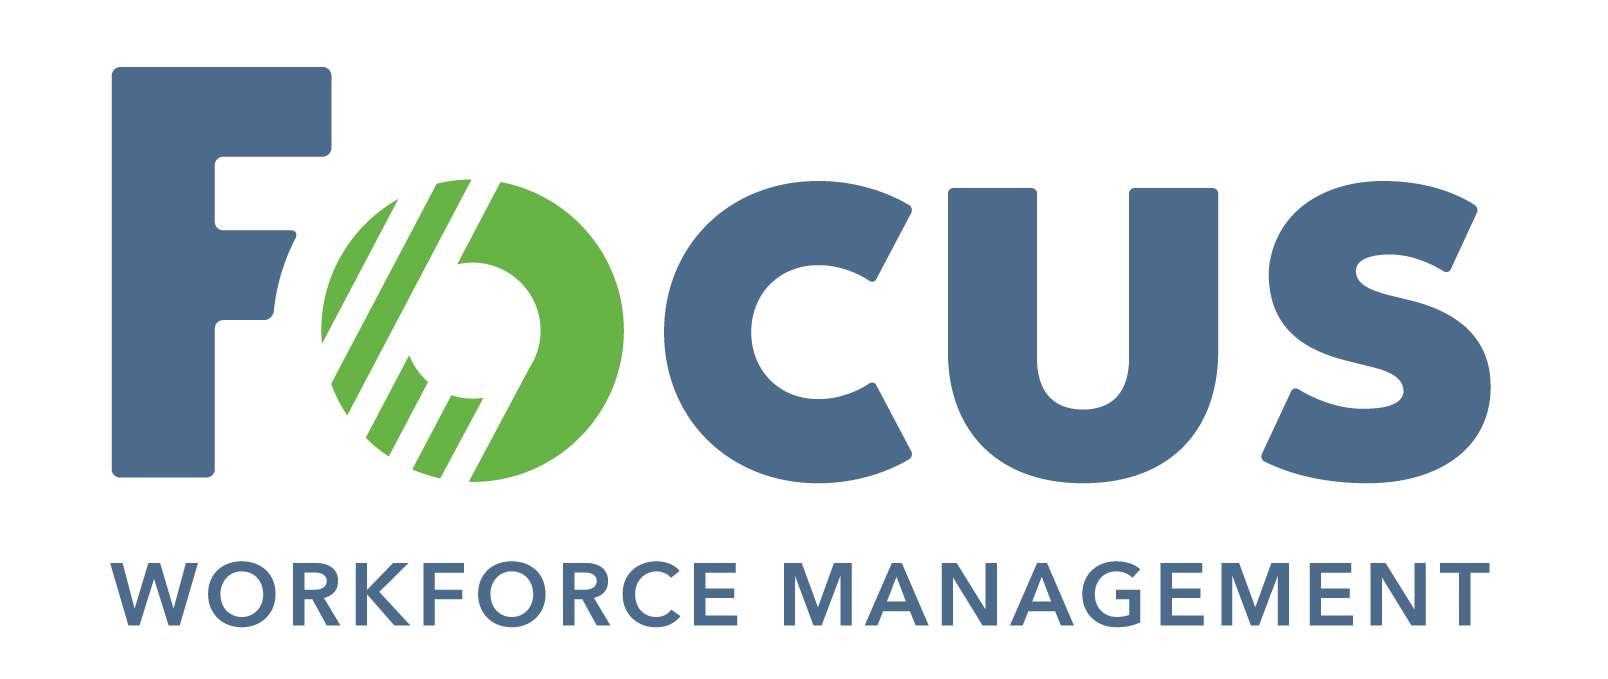 Focus is a national provider of high-volume custom staffing and onsite workforce management projects for large-scale manufacturing and distribution organizations. As a high-volume specialized company, we customize our services and service delivery teams to each individual client. Where typical providers in our industry provide service to numerous industries and clients from a multi-client service branch, we only service high-volume clients to distribution and manufacturing organizations.